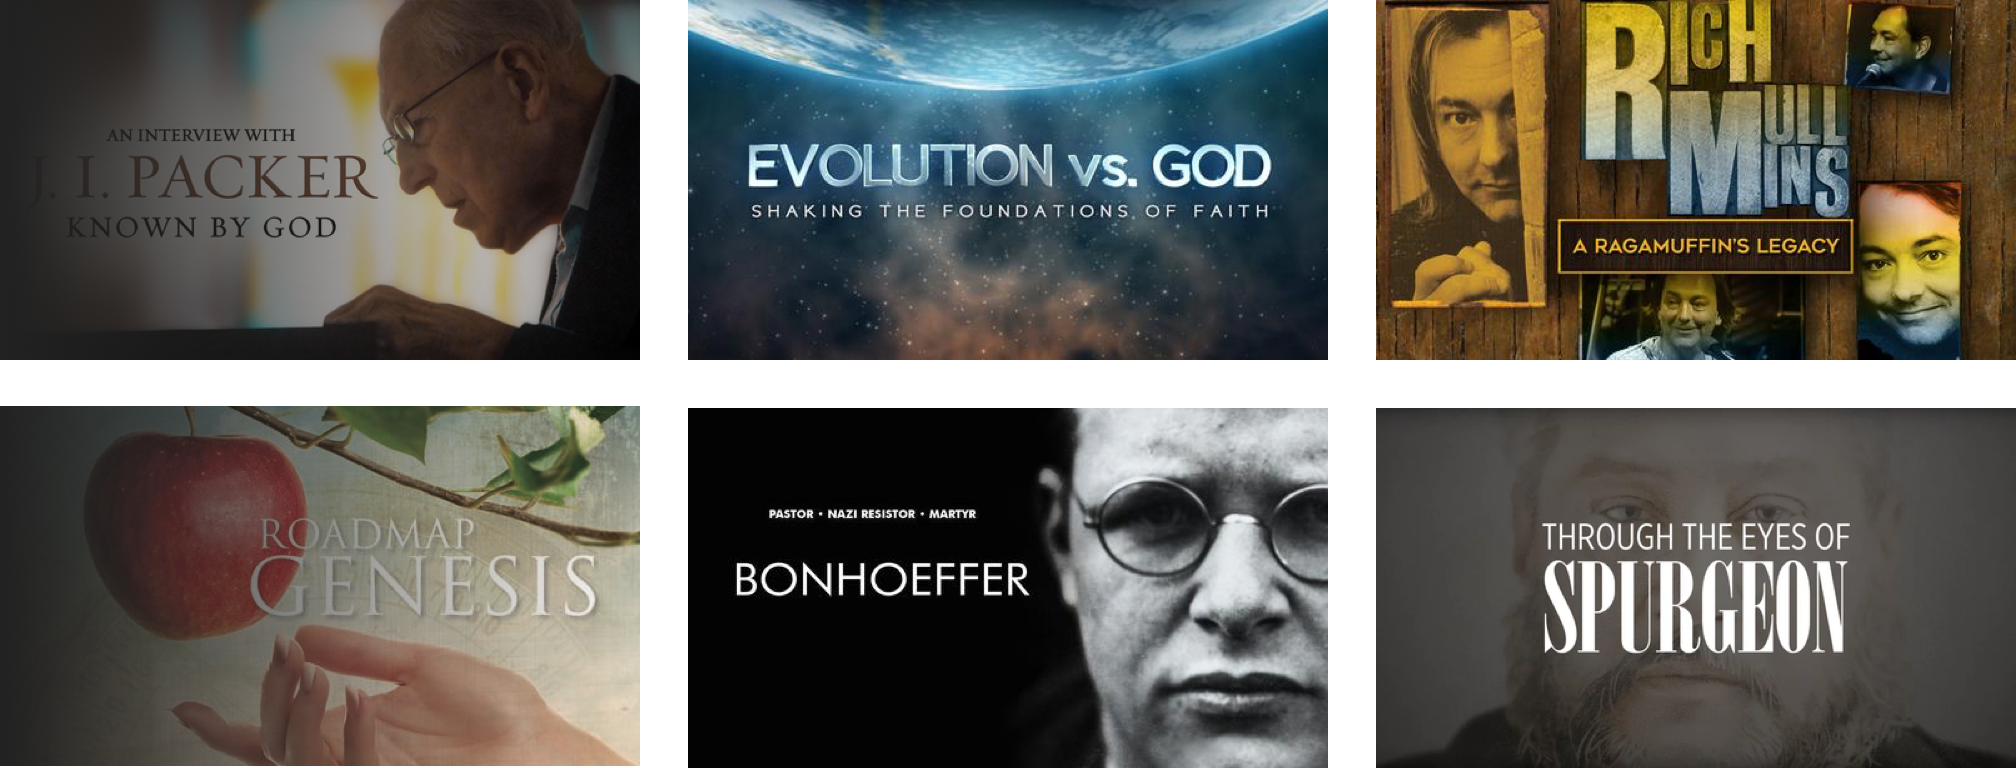 Faithlife TV documentaries